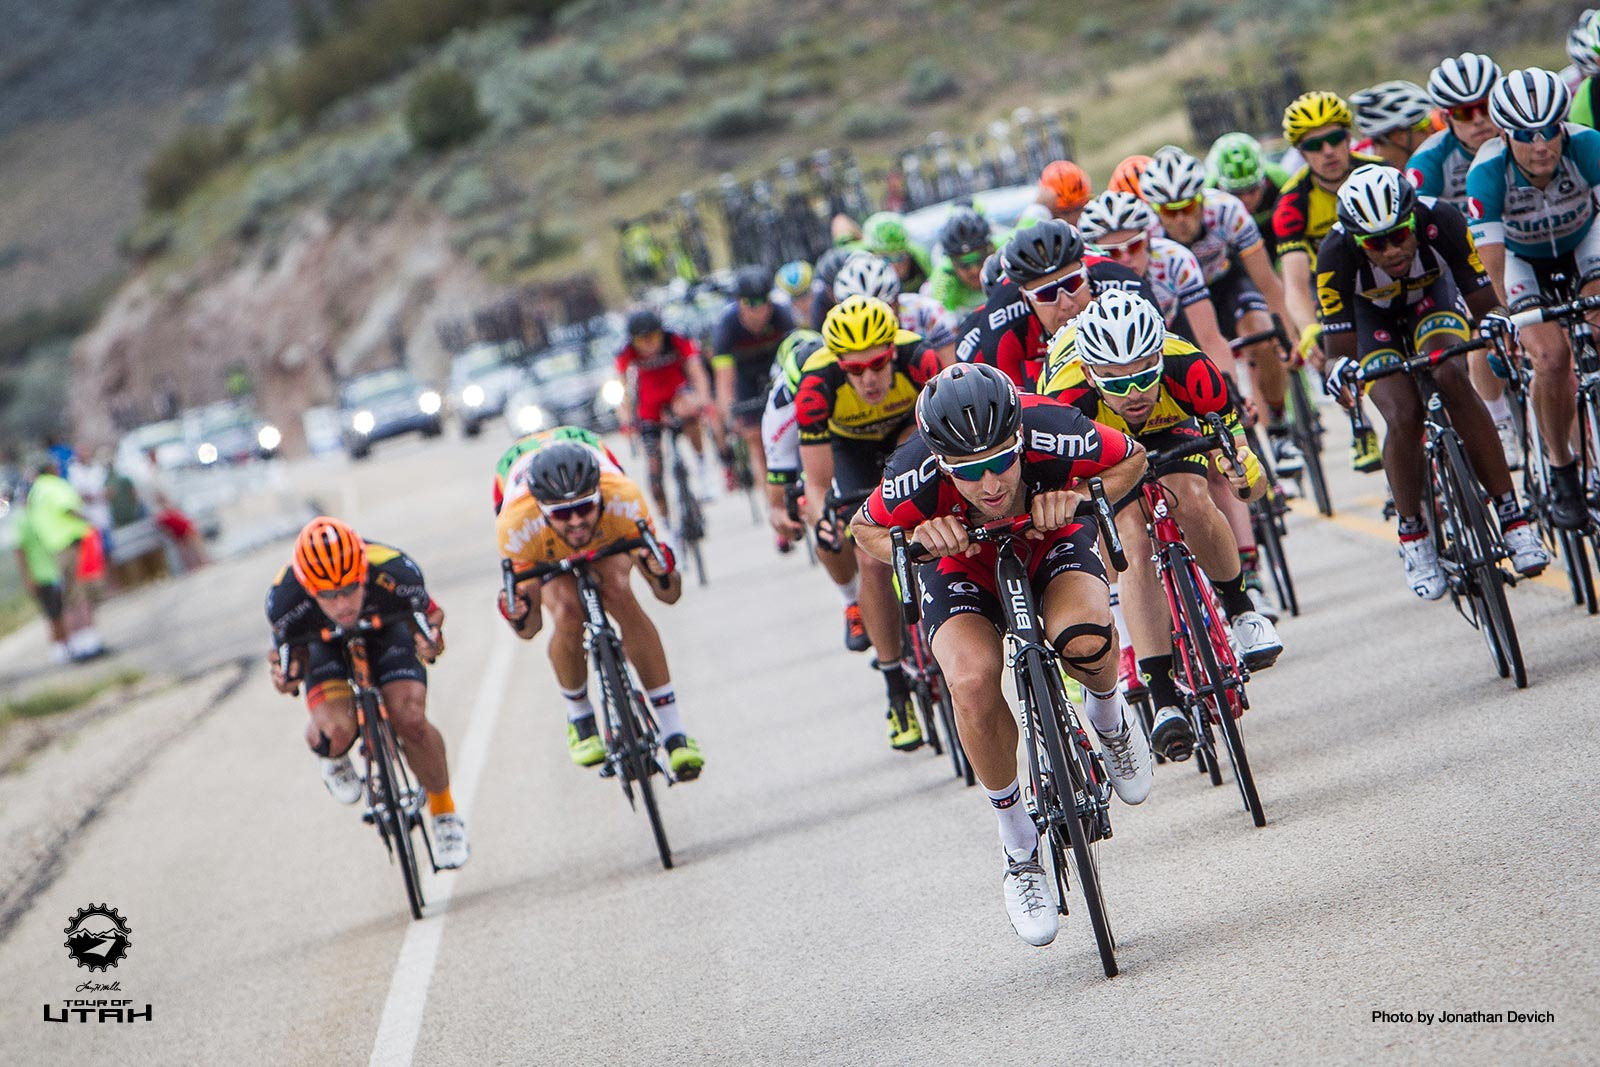 tour of utah to race its way through zion national park